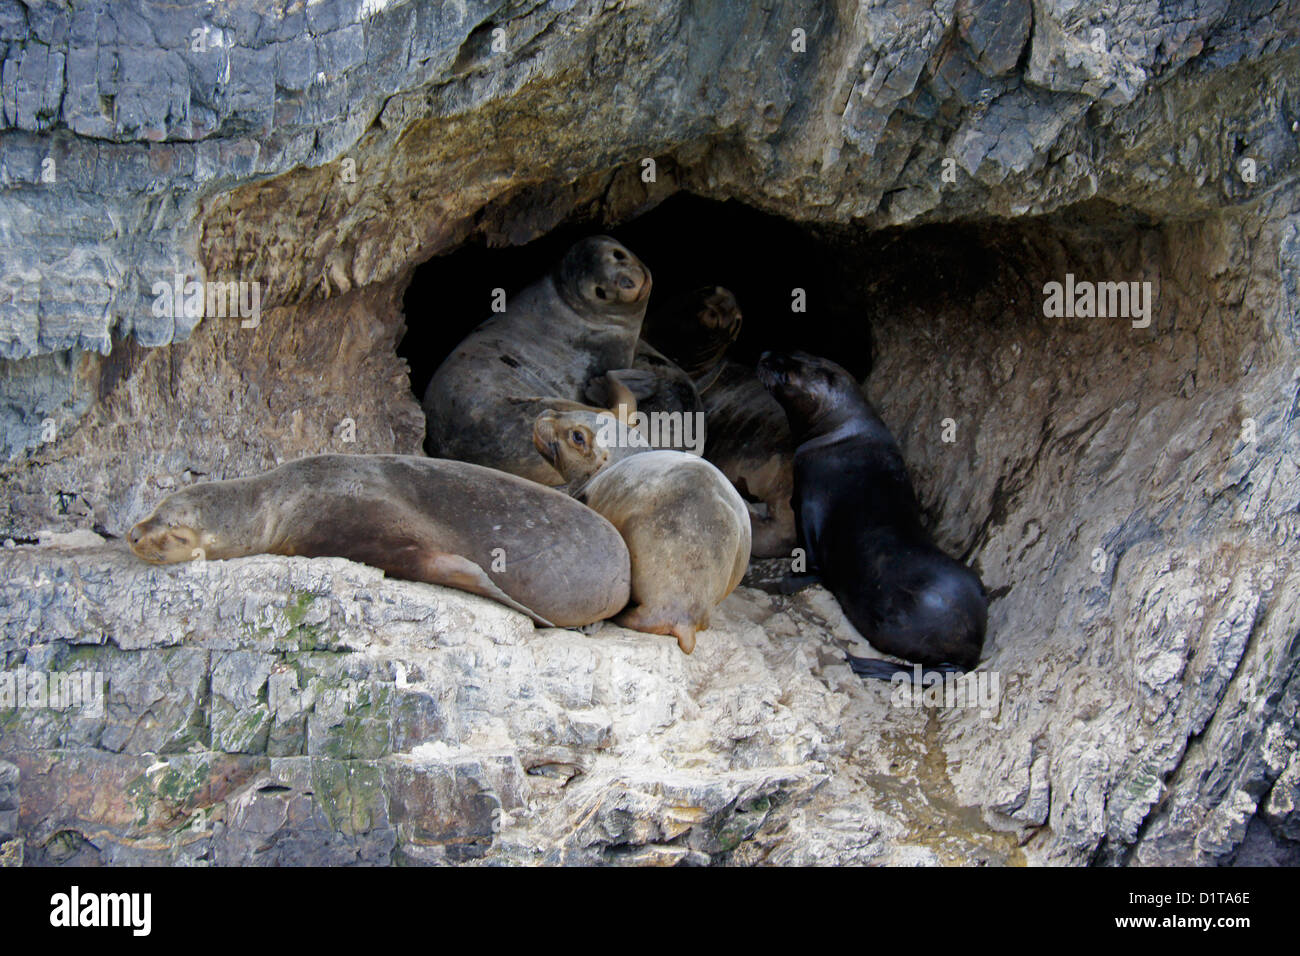 South American (Patagonian, southern) sea lions resting in cave, Seno Ultima Esperanza (Last Hope Sound), Patagonia, - Stock Image